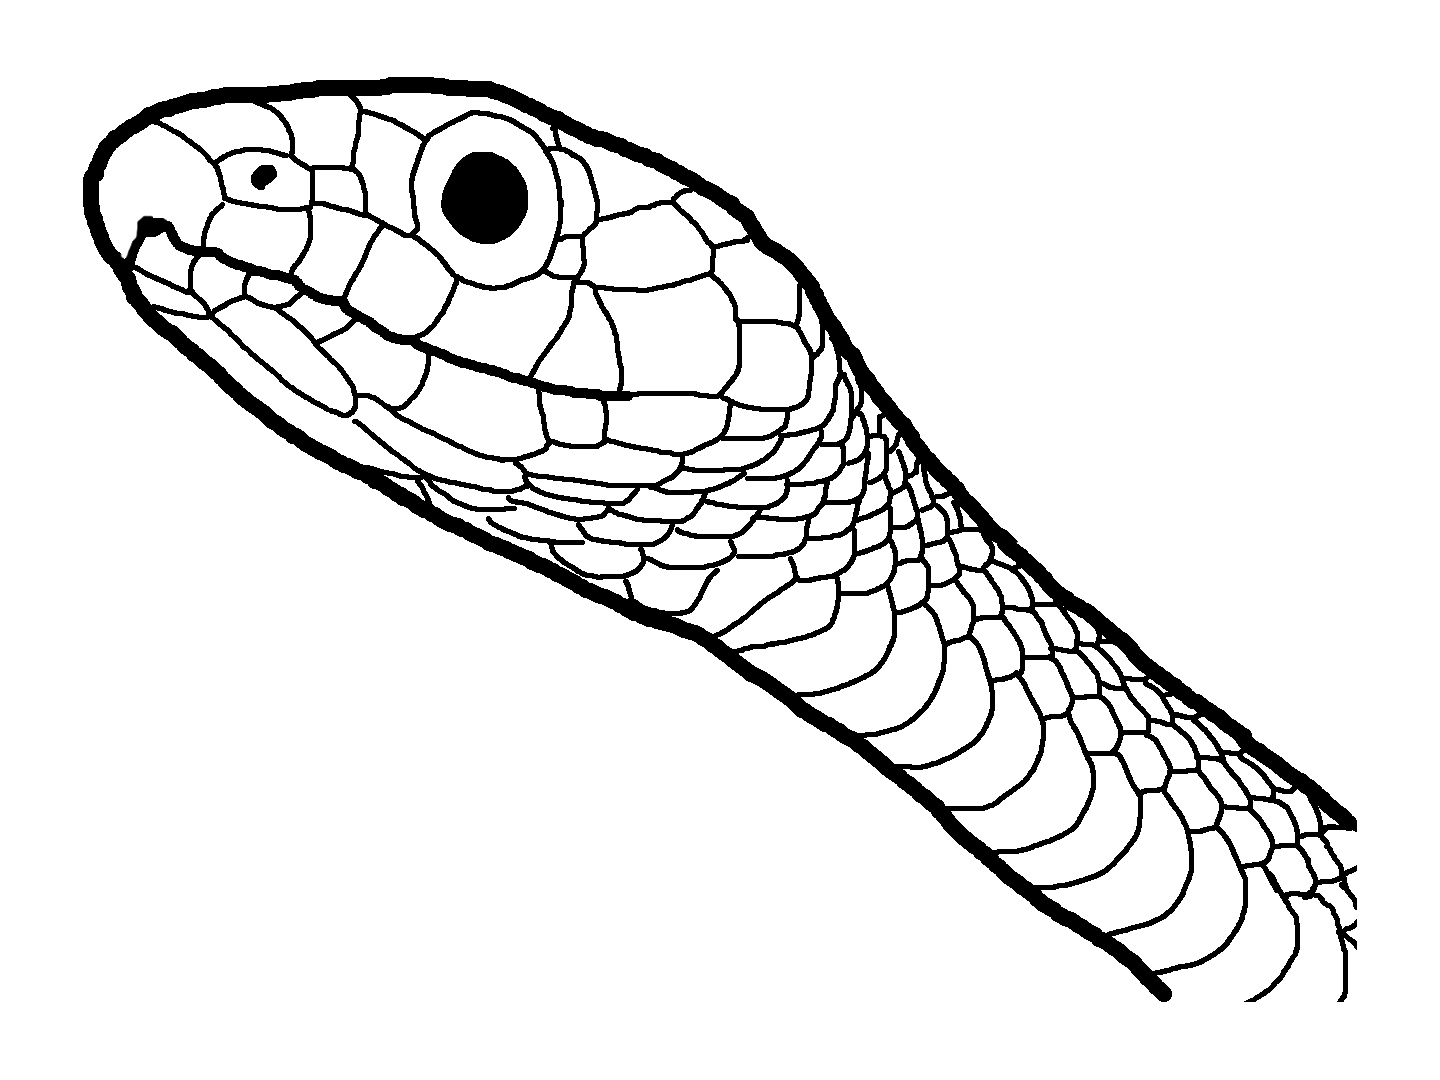 lizard and snake coloring pages - photo#22